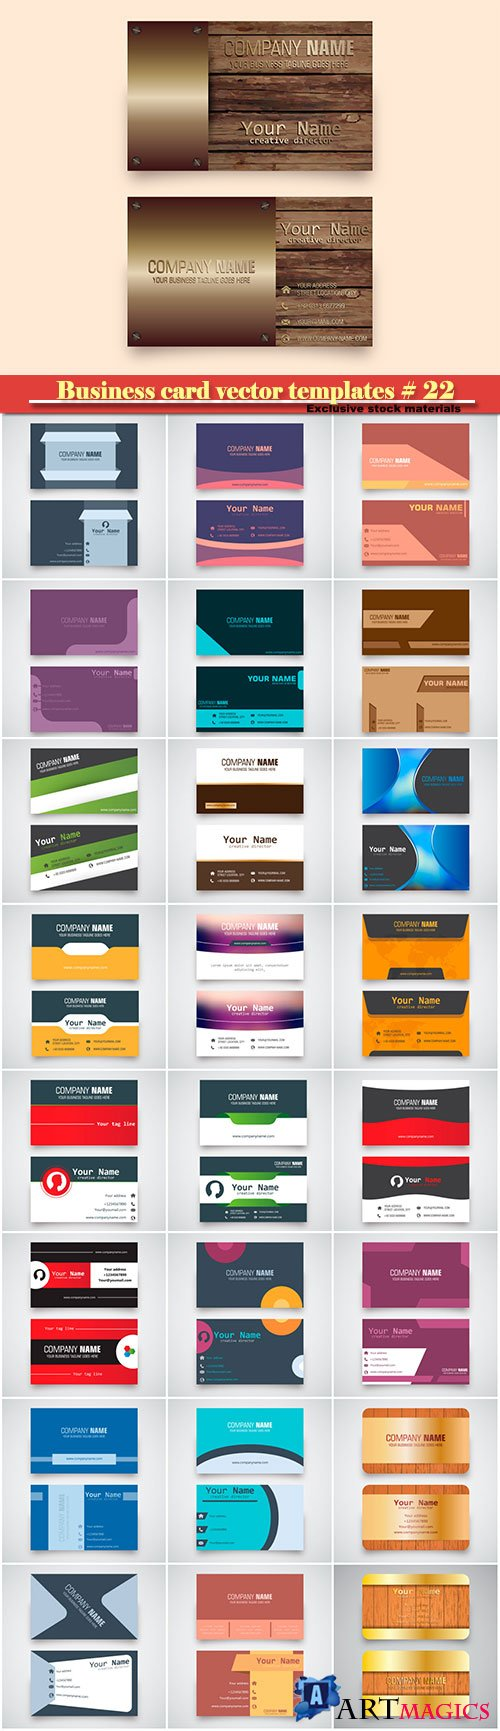 Business card vector templates # 22